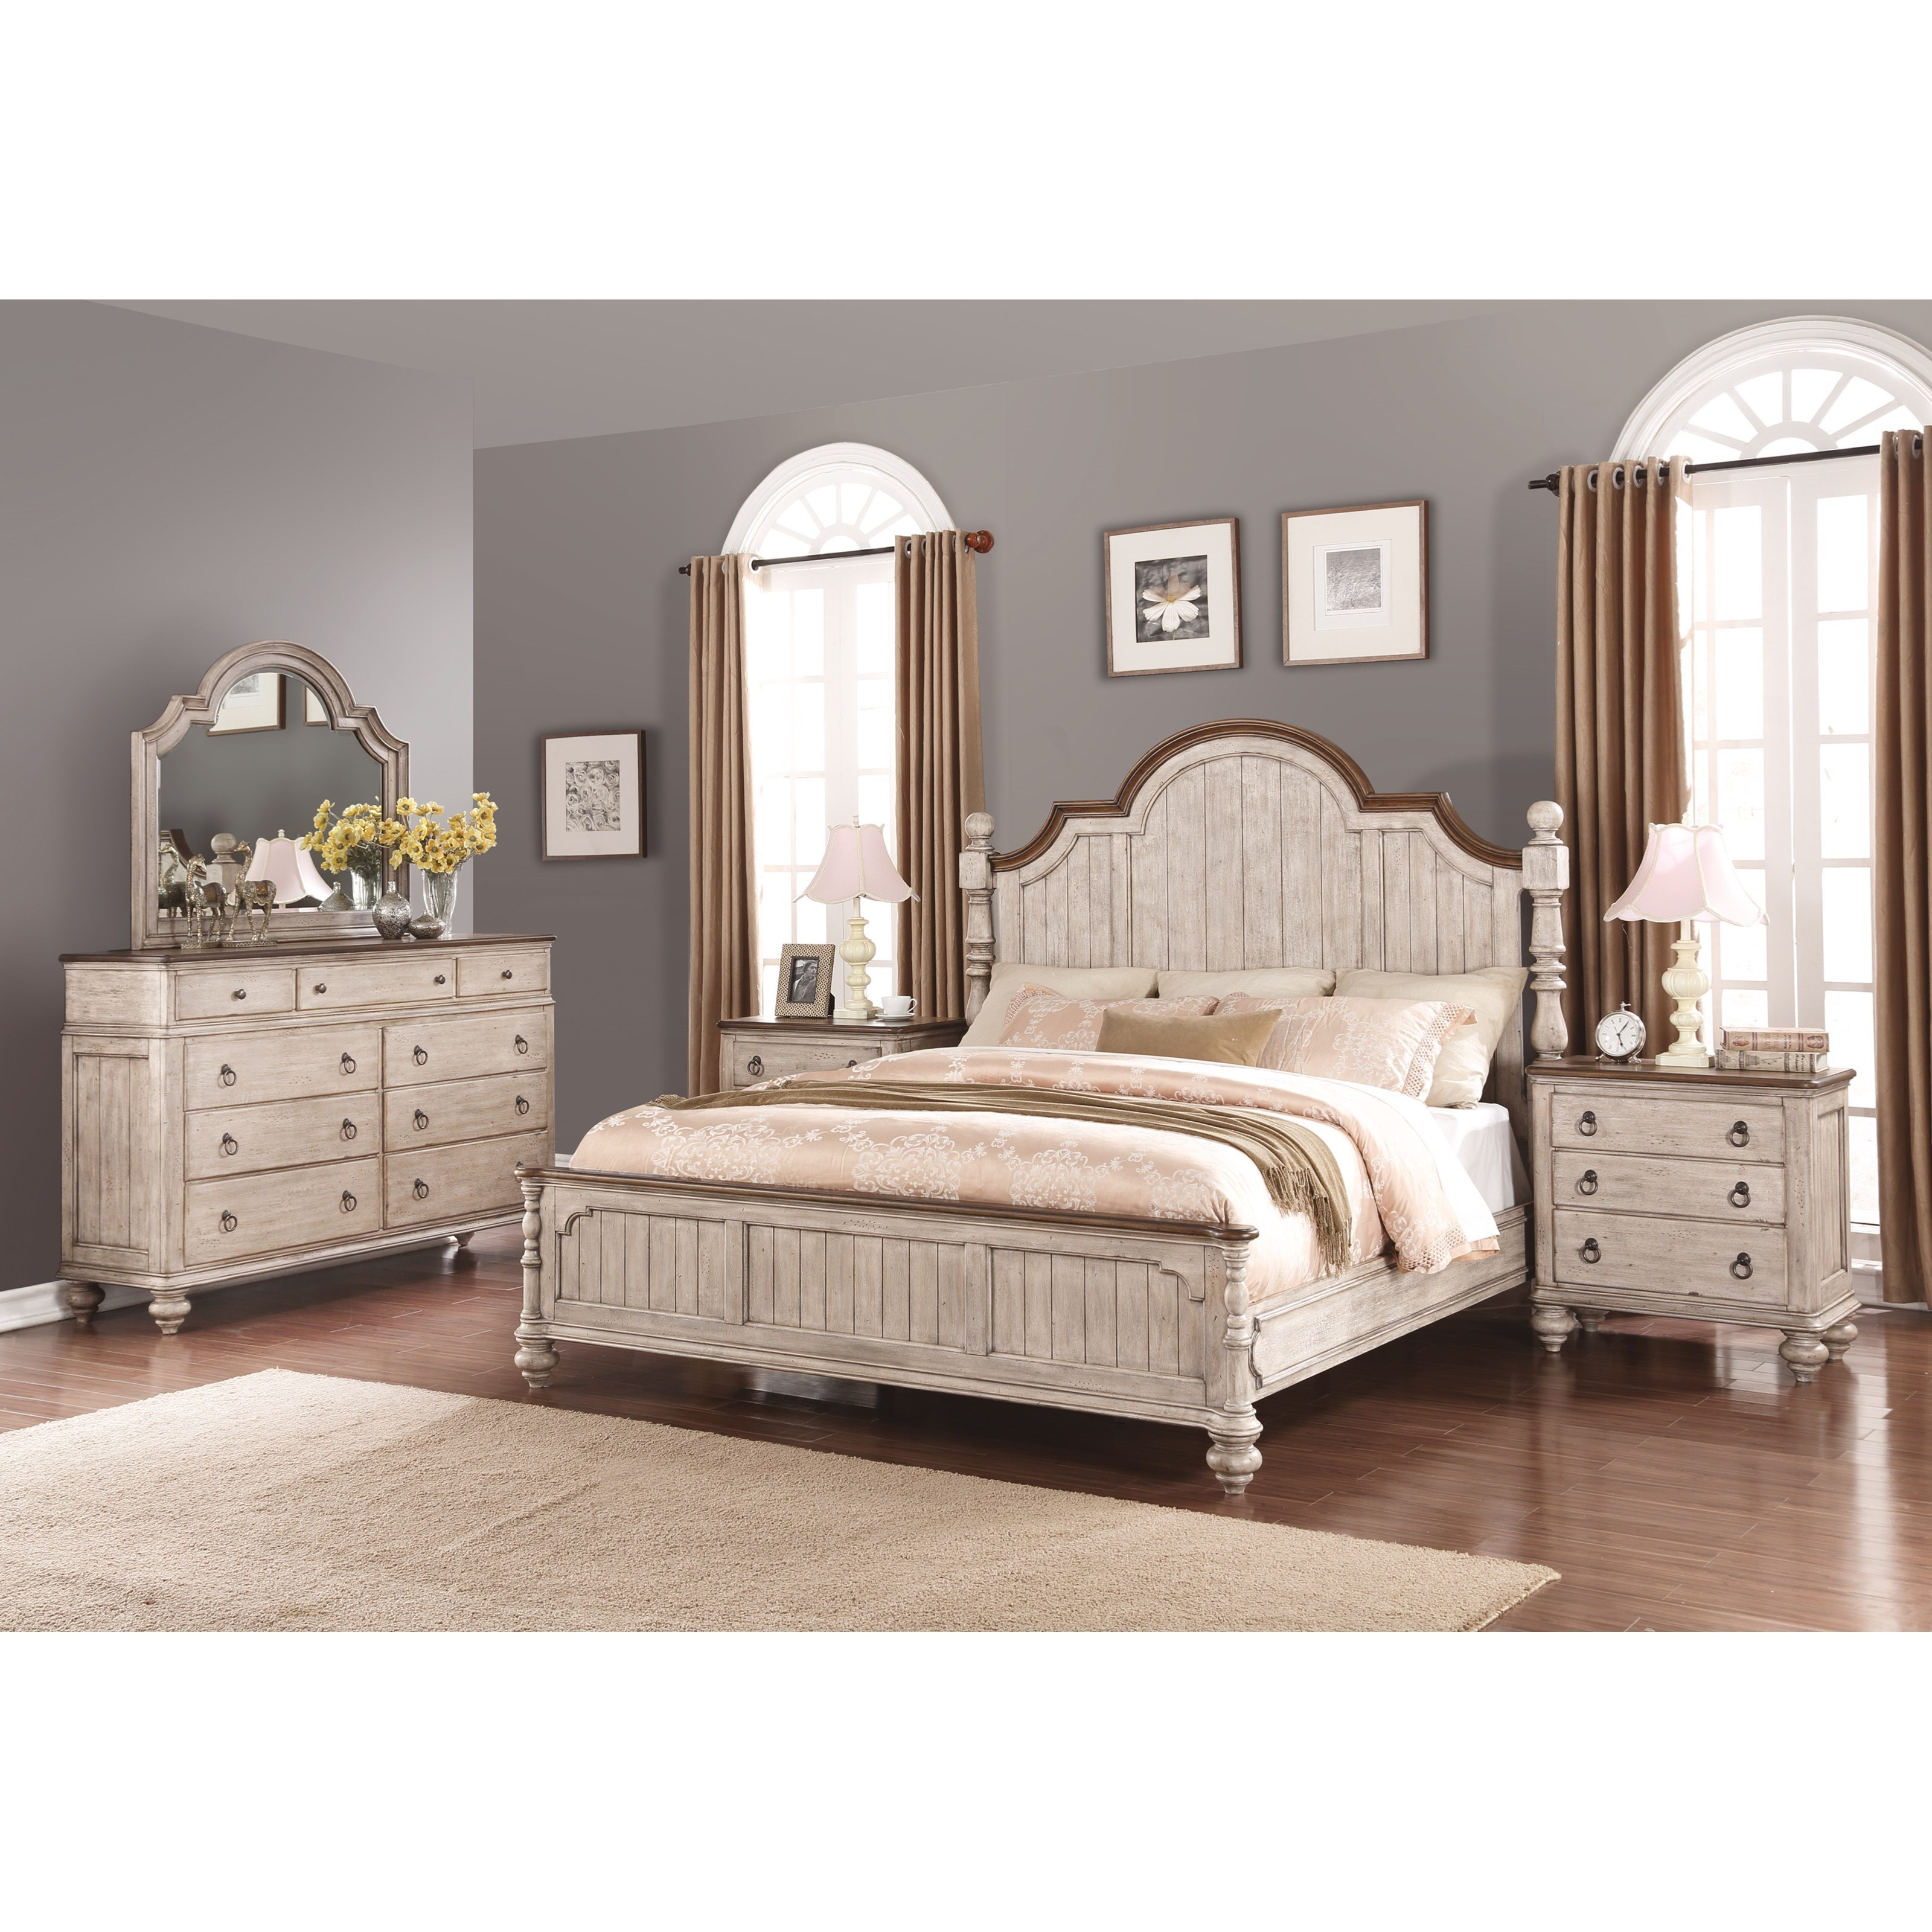 Plymouth Queen Bedroom Group by Flexsteel Wynwood Collection at Fashion Furniture